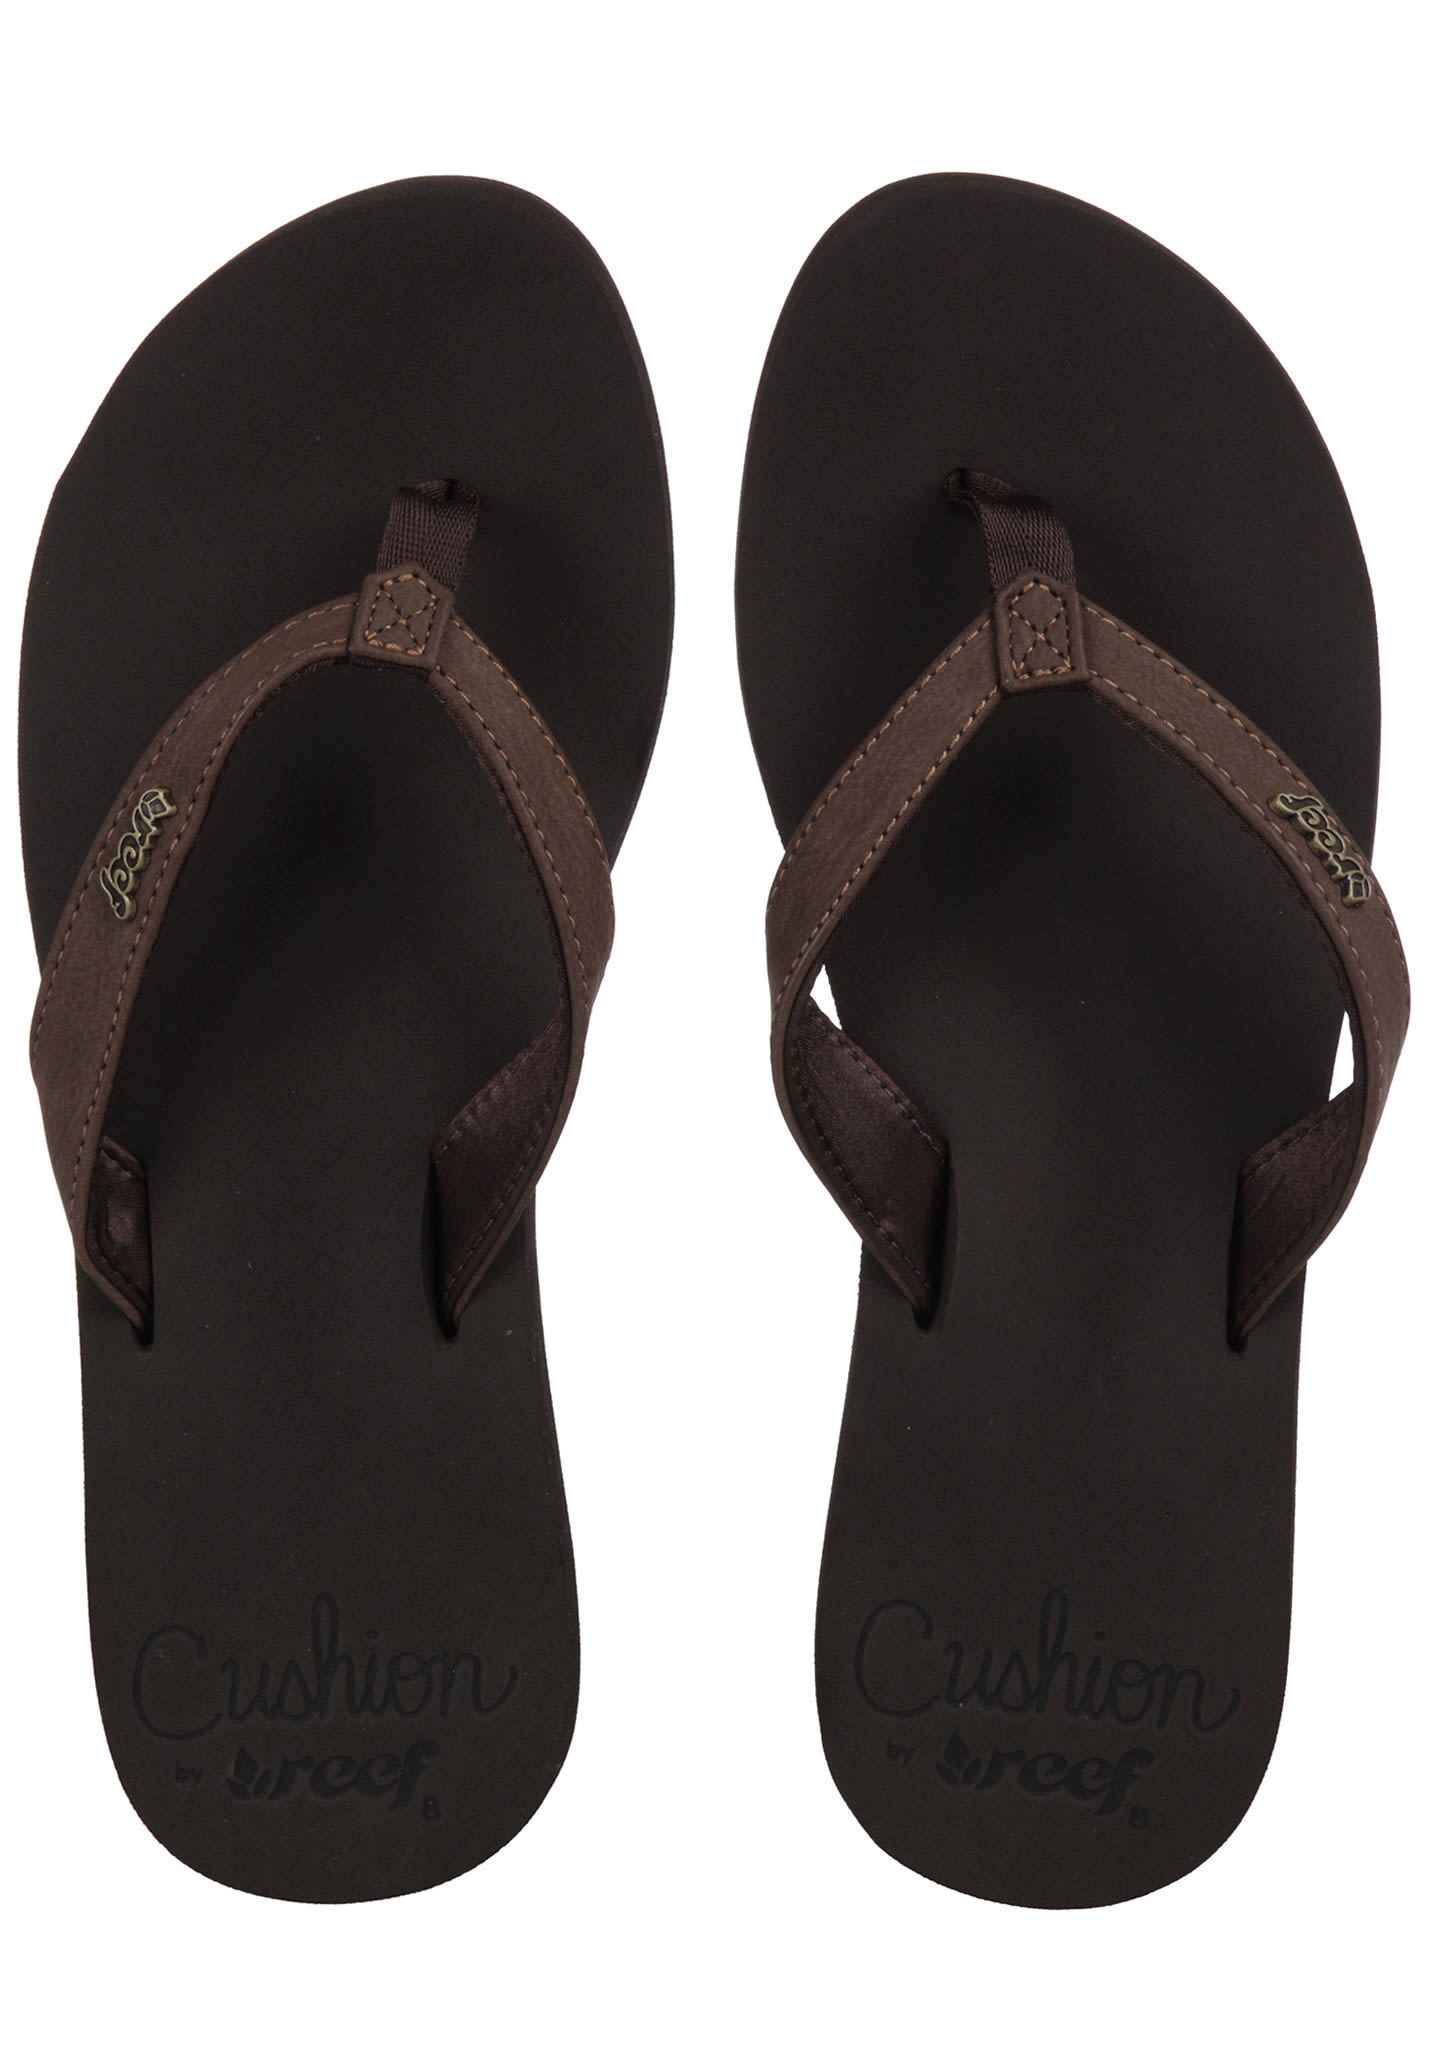 241d429275b4 Reef Cushion Luna - Sandals for Women - Brown - Planet Sports